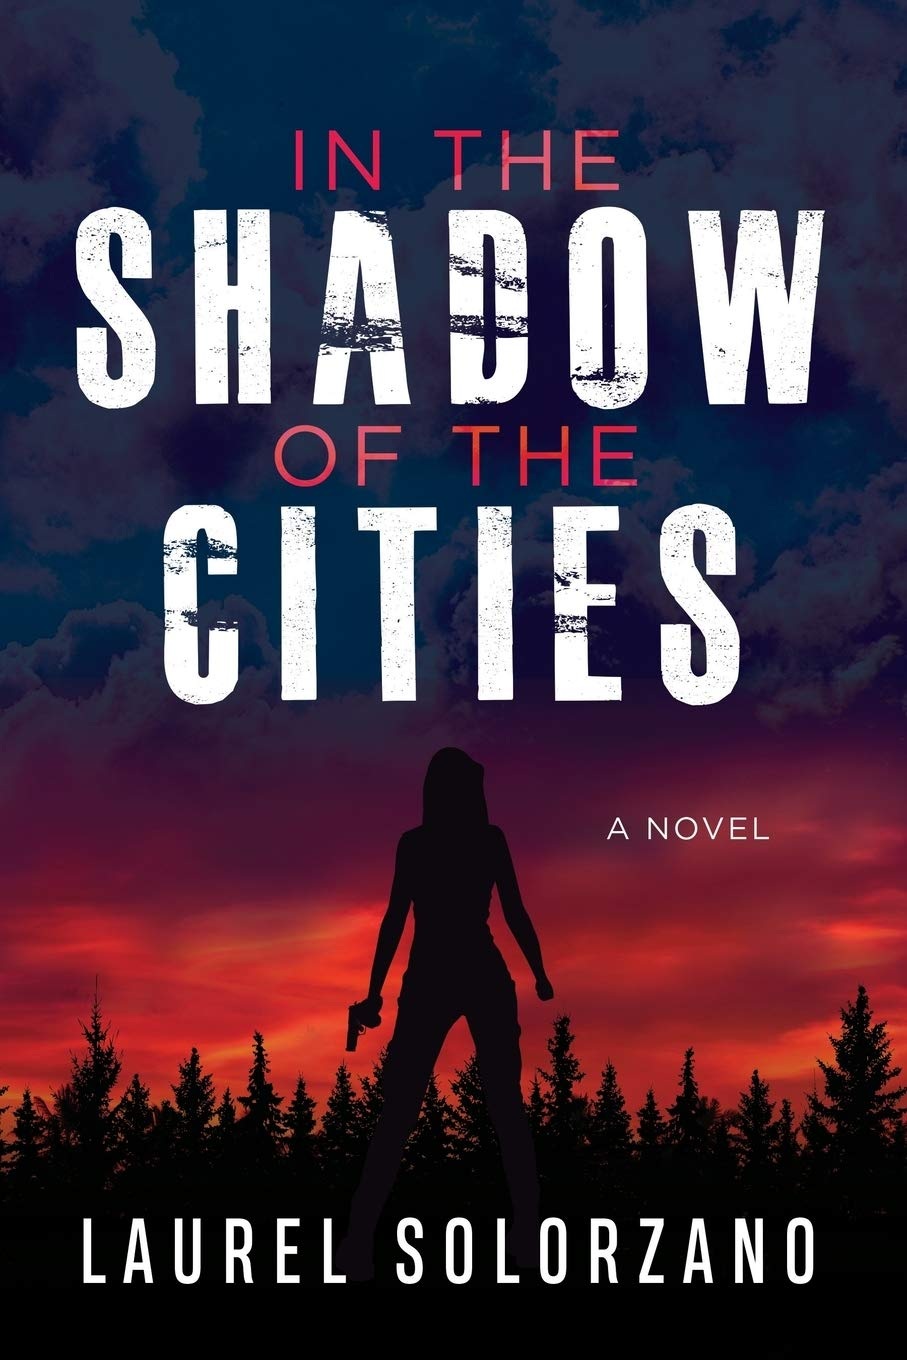 In the Shadow of the Cities